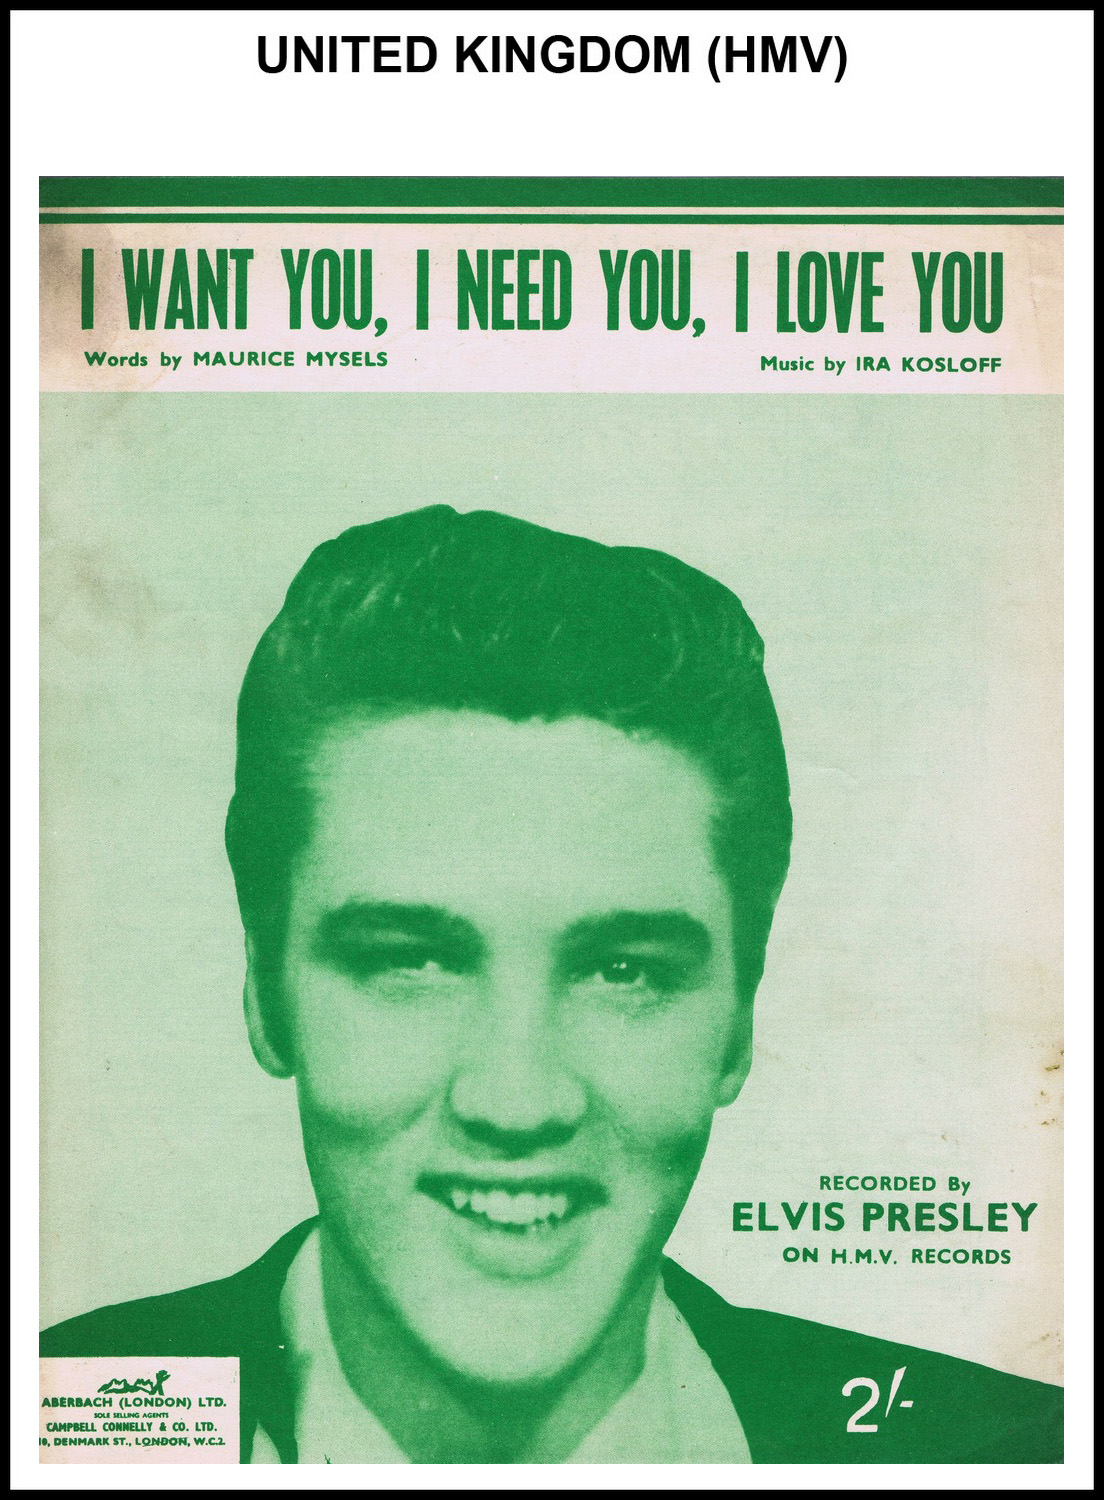 1956 - I Want You, I Need You, I Love You (UK, HMV) (CHRIS GILES COLLECTION)